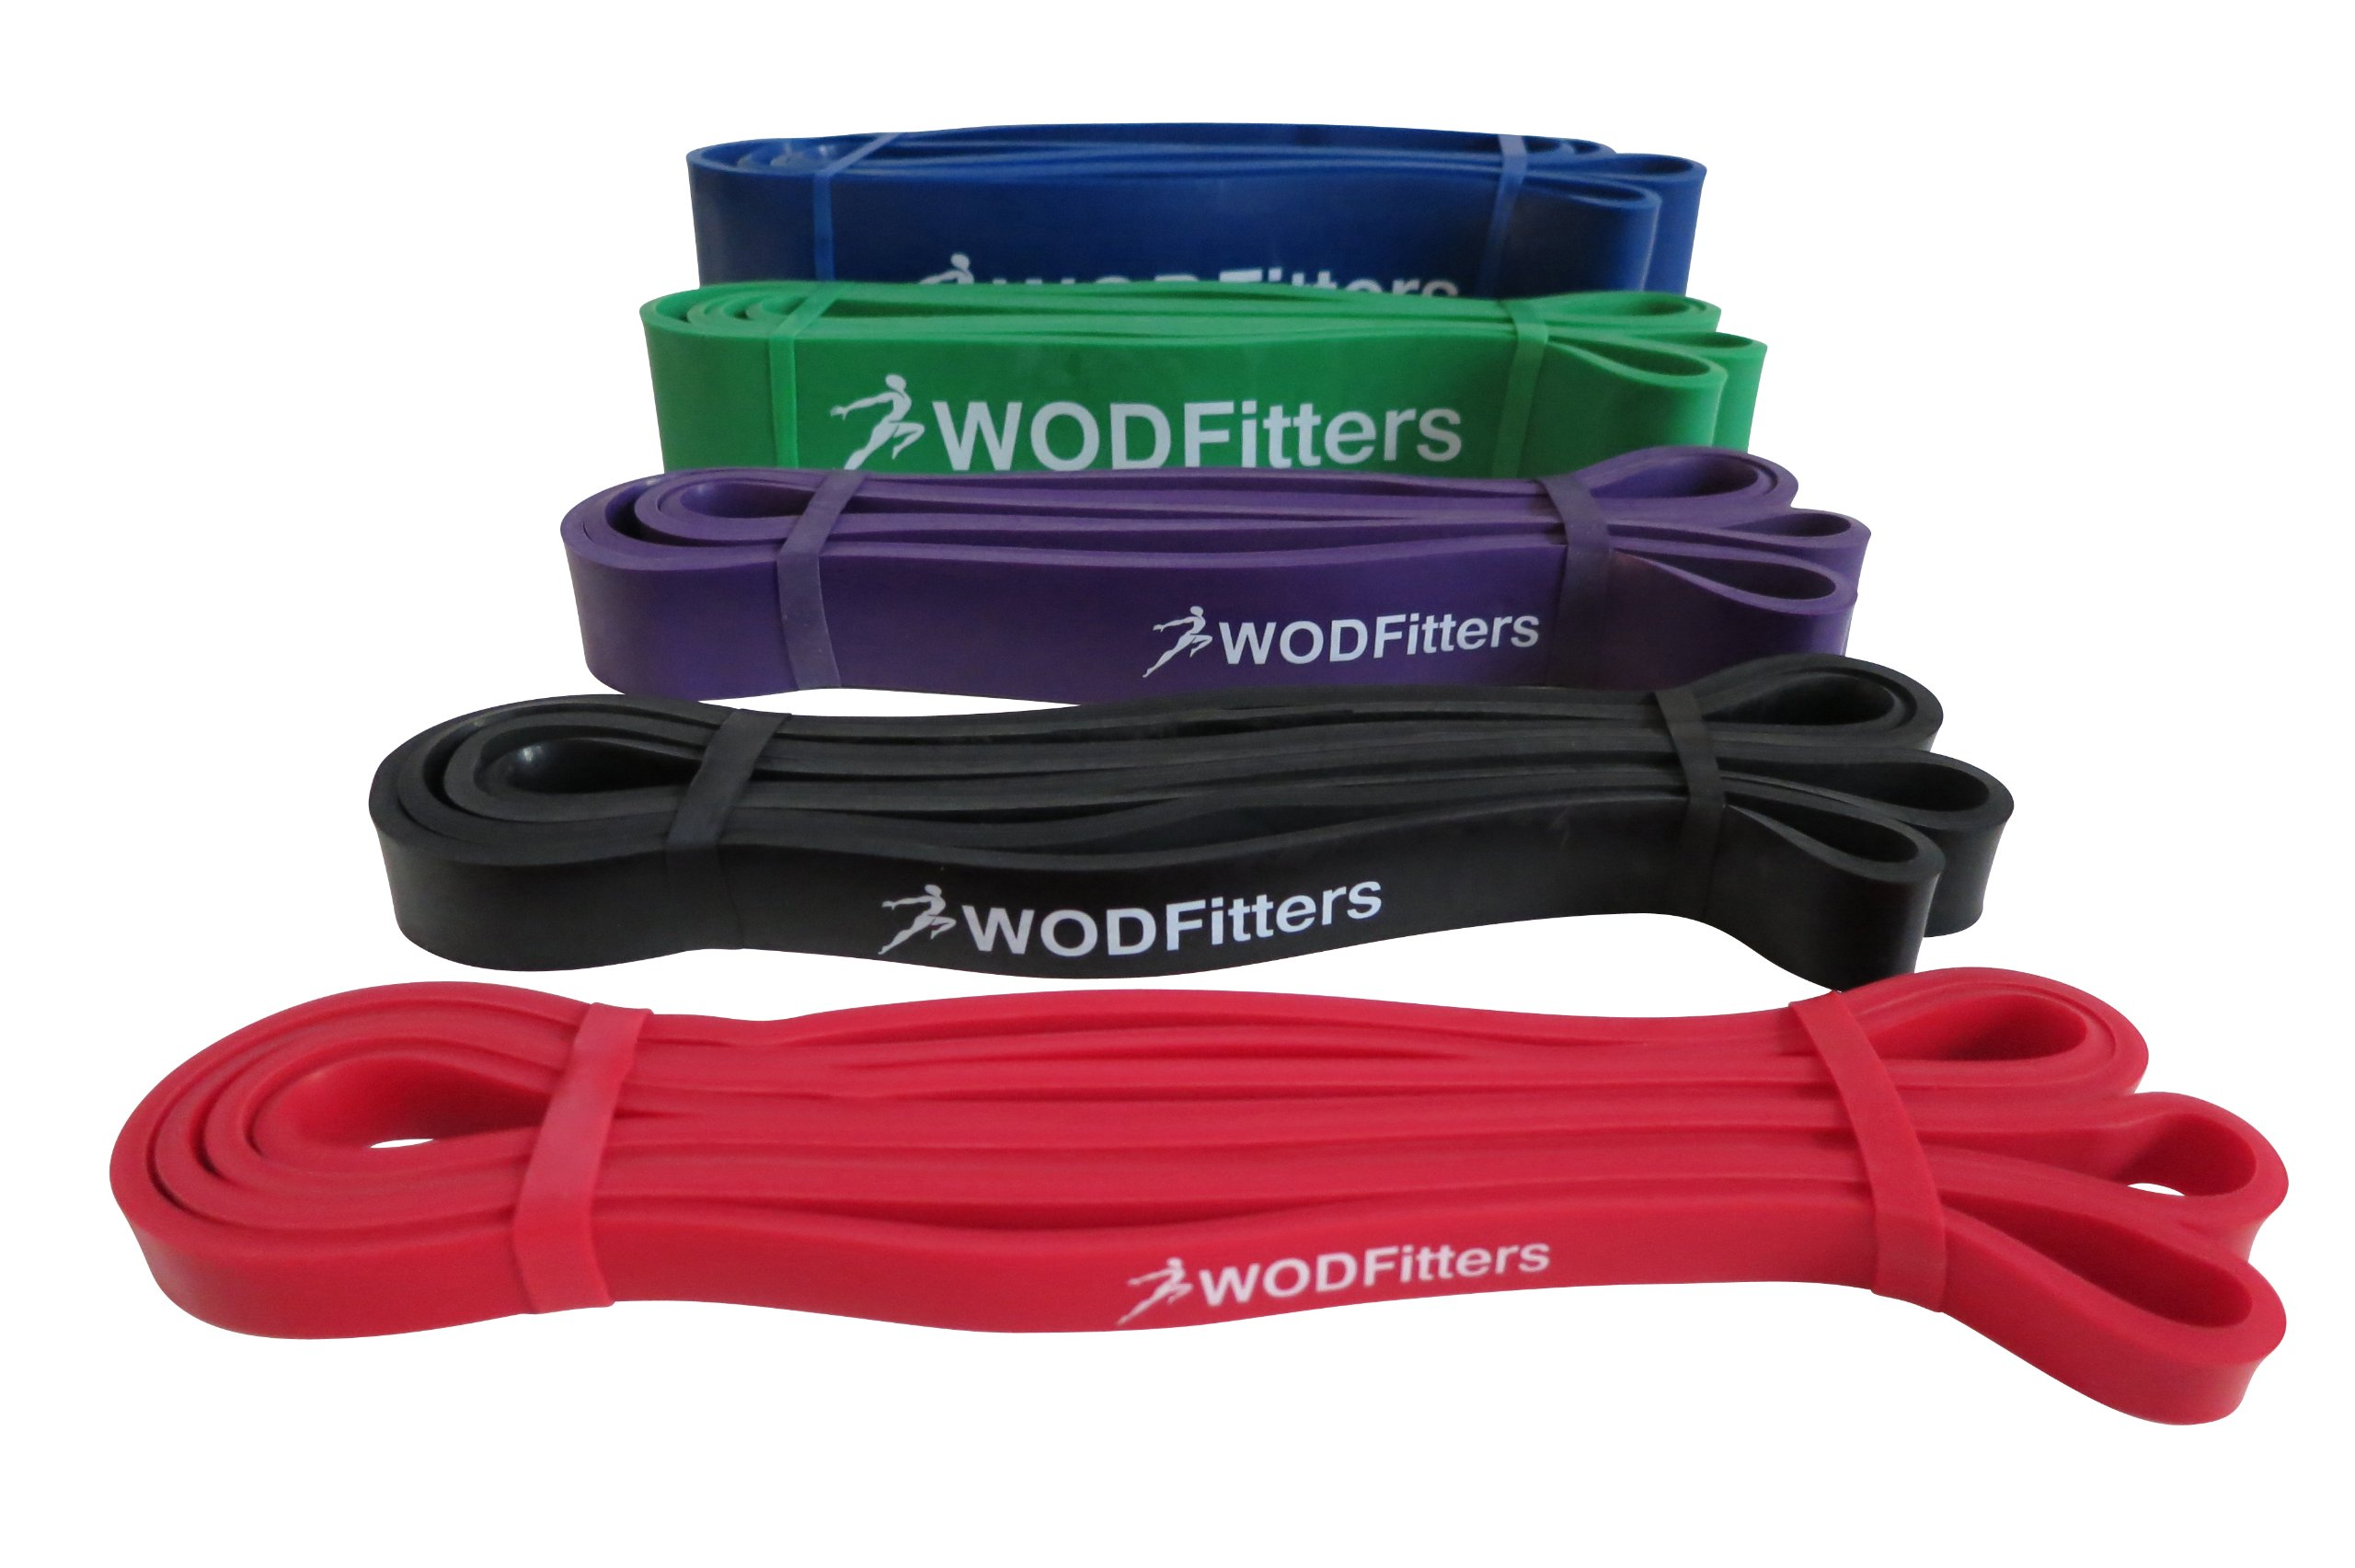 WODFitters Stretch Resistance Pull Up Assist Band with eGuide, 5 Blue - 65 to 175 Pounds (2.5'' 4.5mm) by WODFitters (Image #1)